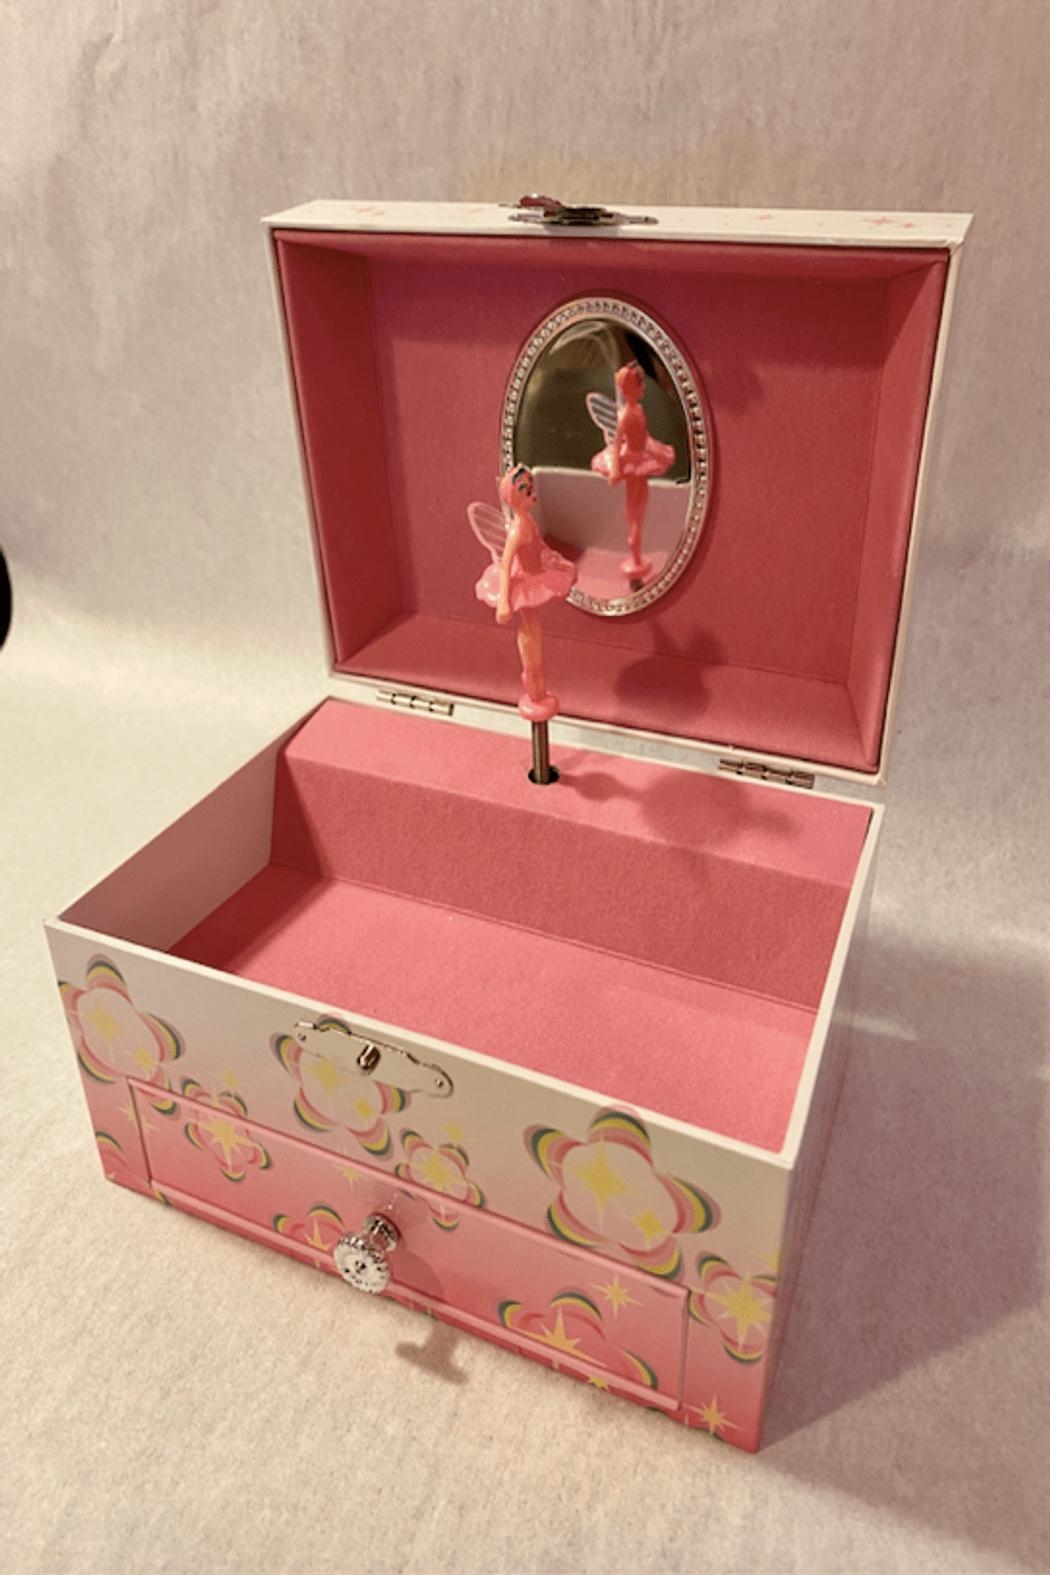 Mele & Co Musical Jewelry Box Small - Main Image